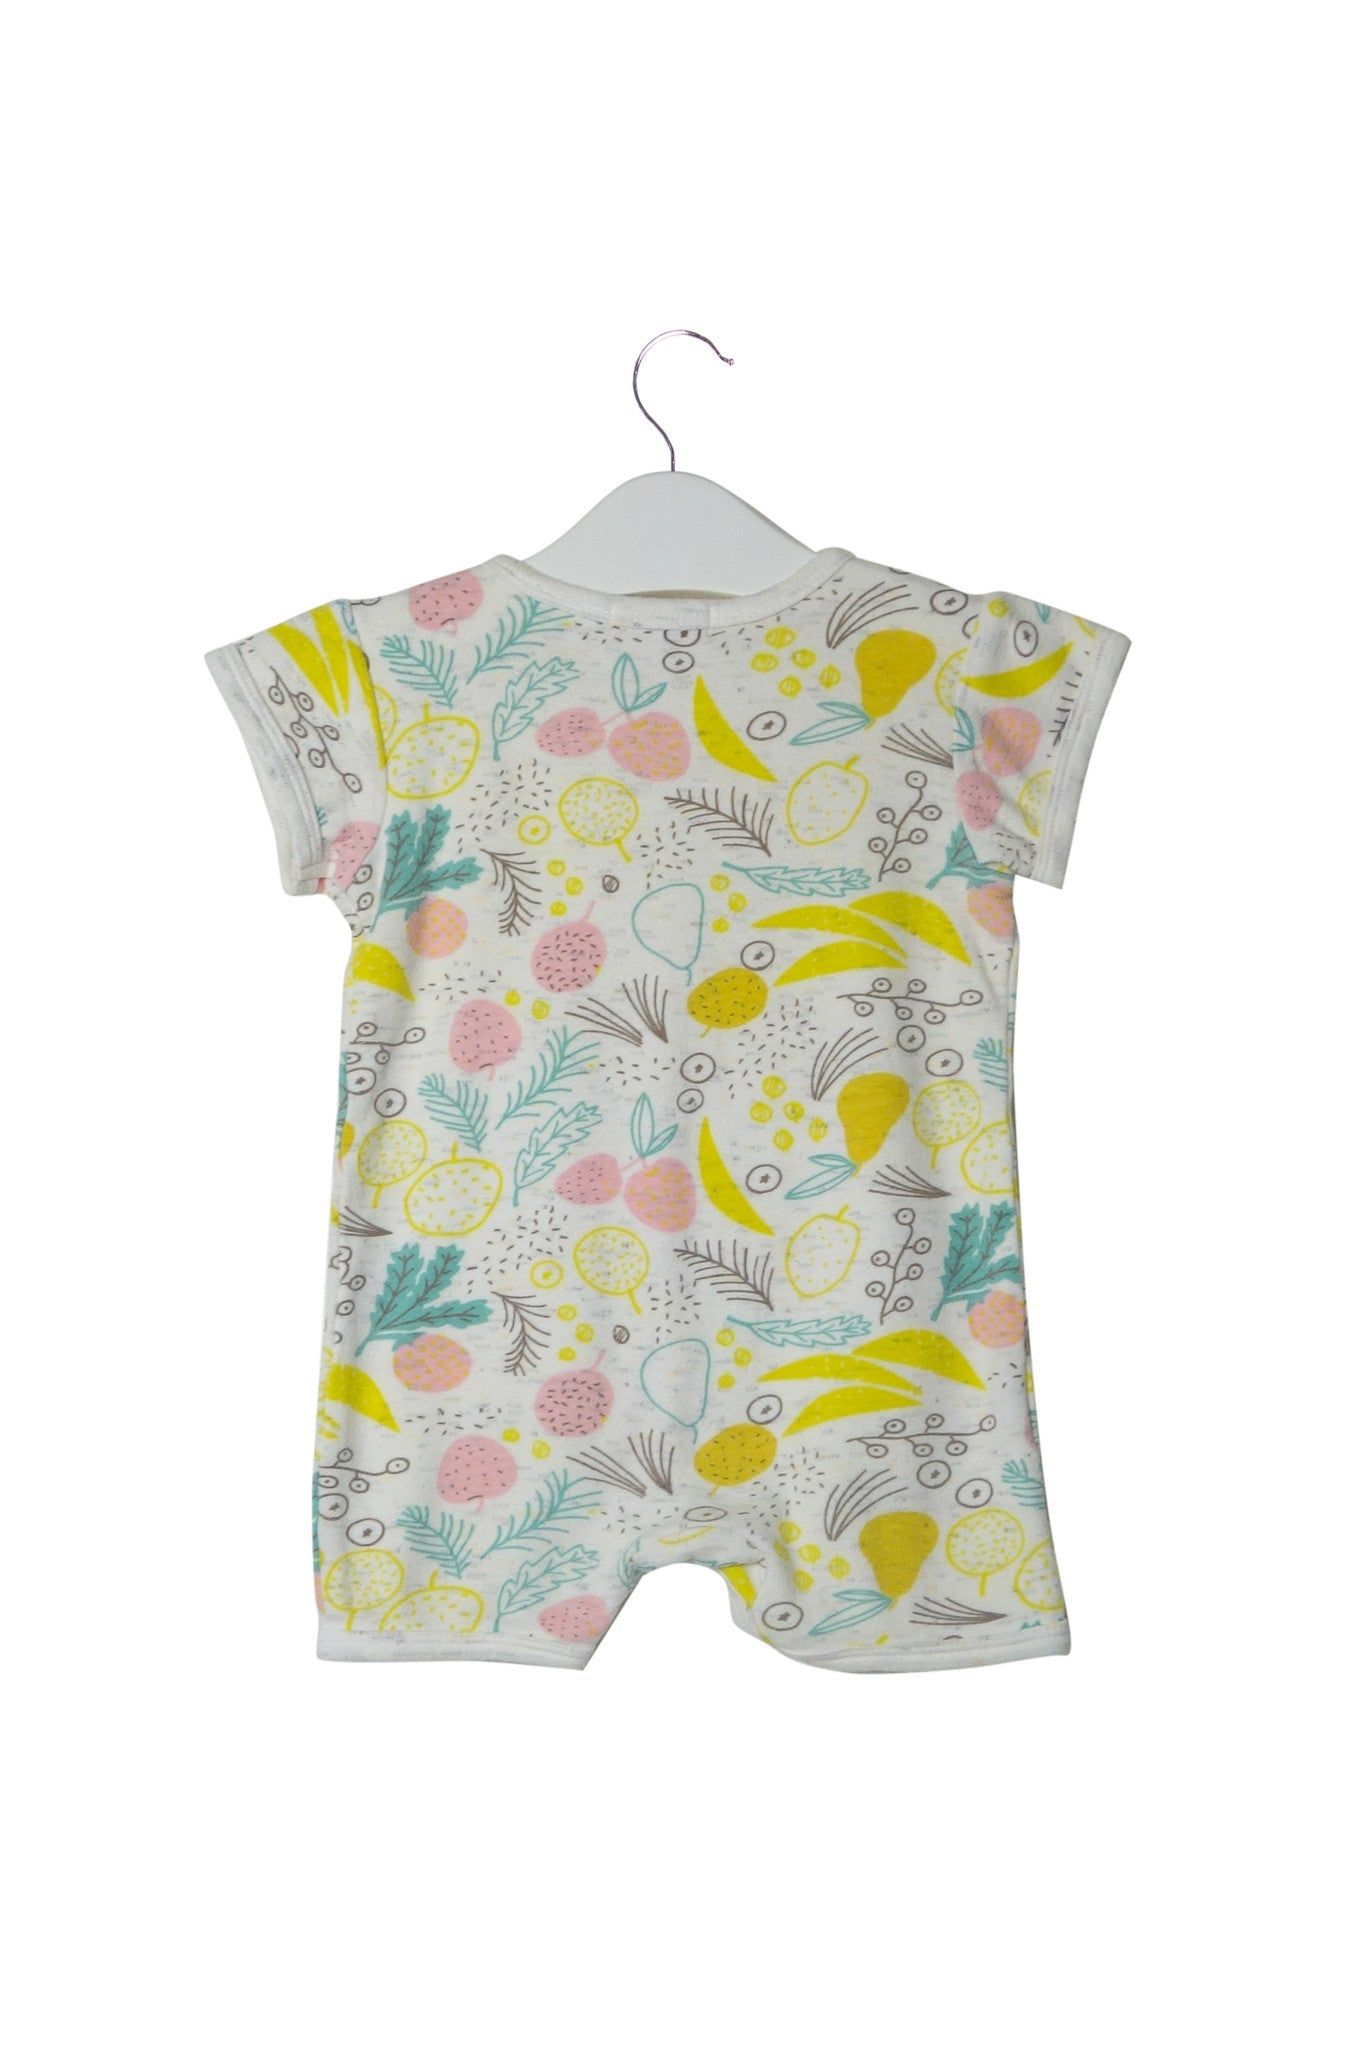 10002764 Wilson & Frenchy Baby~Romper 3-6M at Retykle